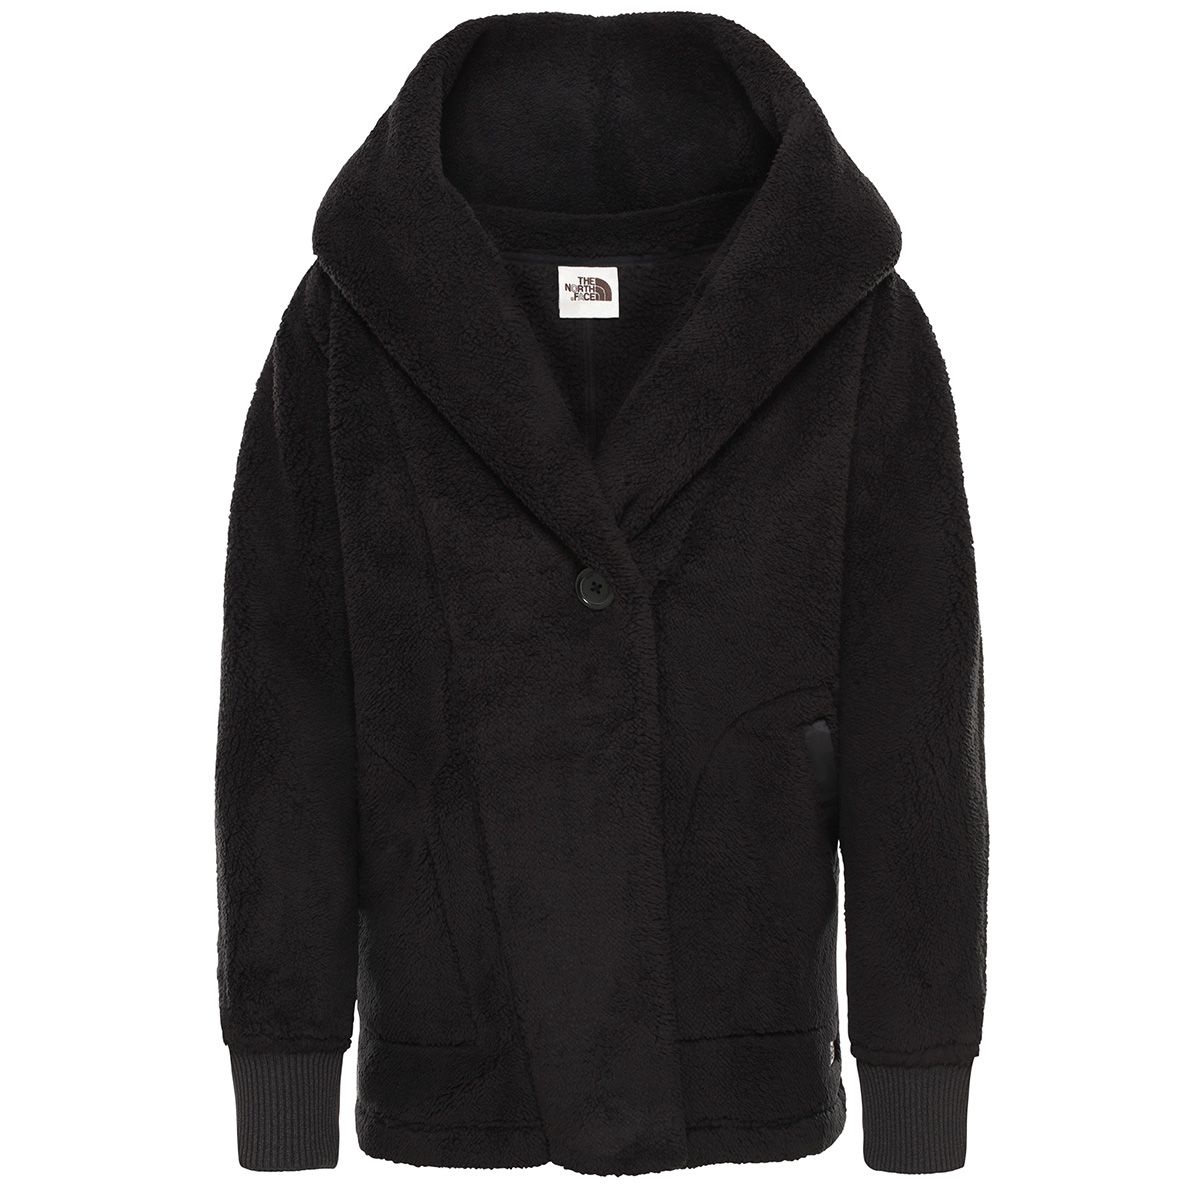 The North Face Damen Campshire Fleece Jacke (Schwarz) | Fleecejacken > Damen